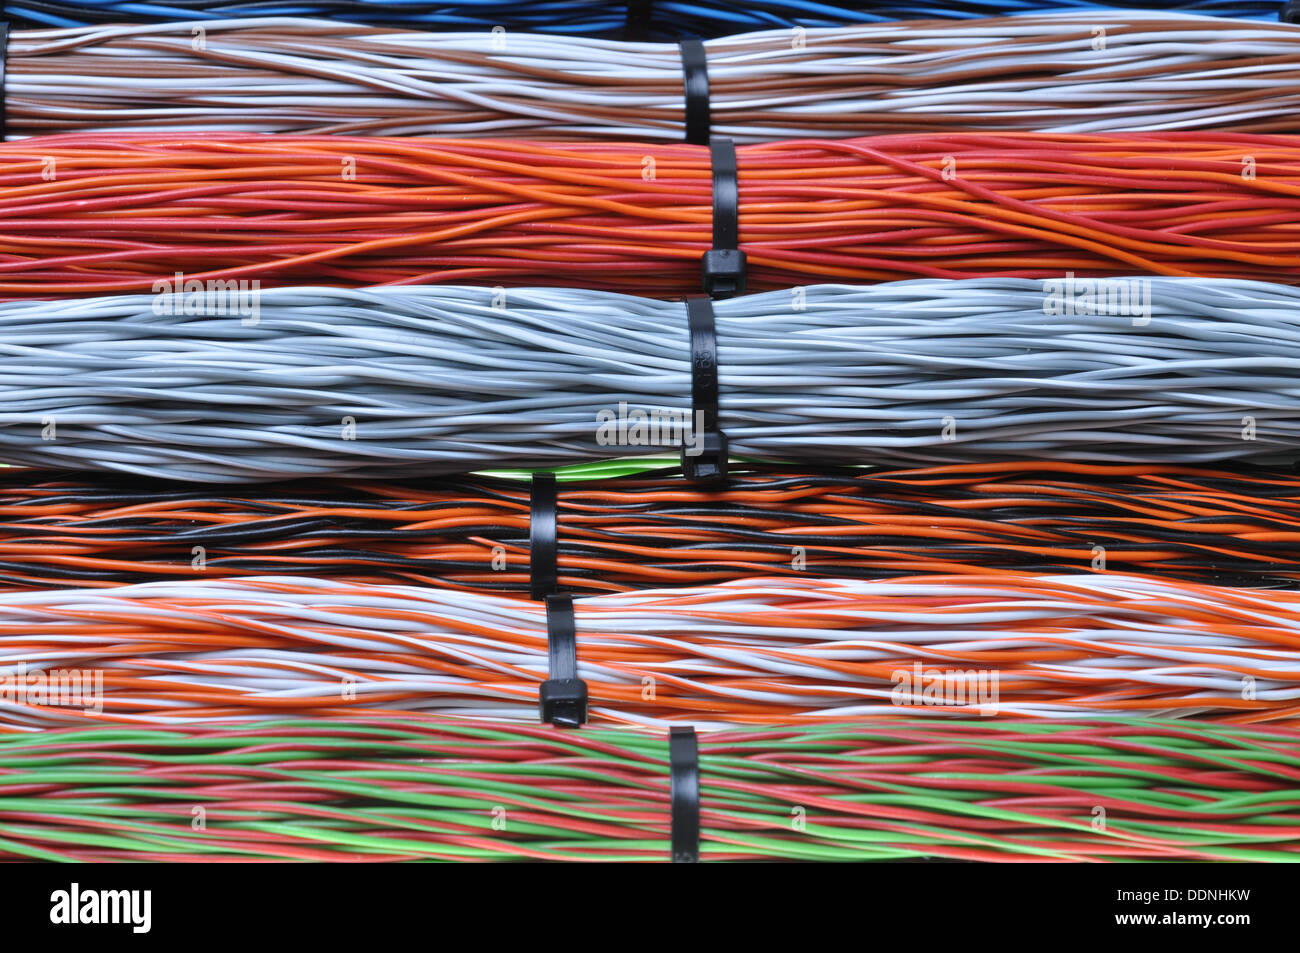 Network cables, wires in telecommunication and computer networks ...